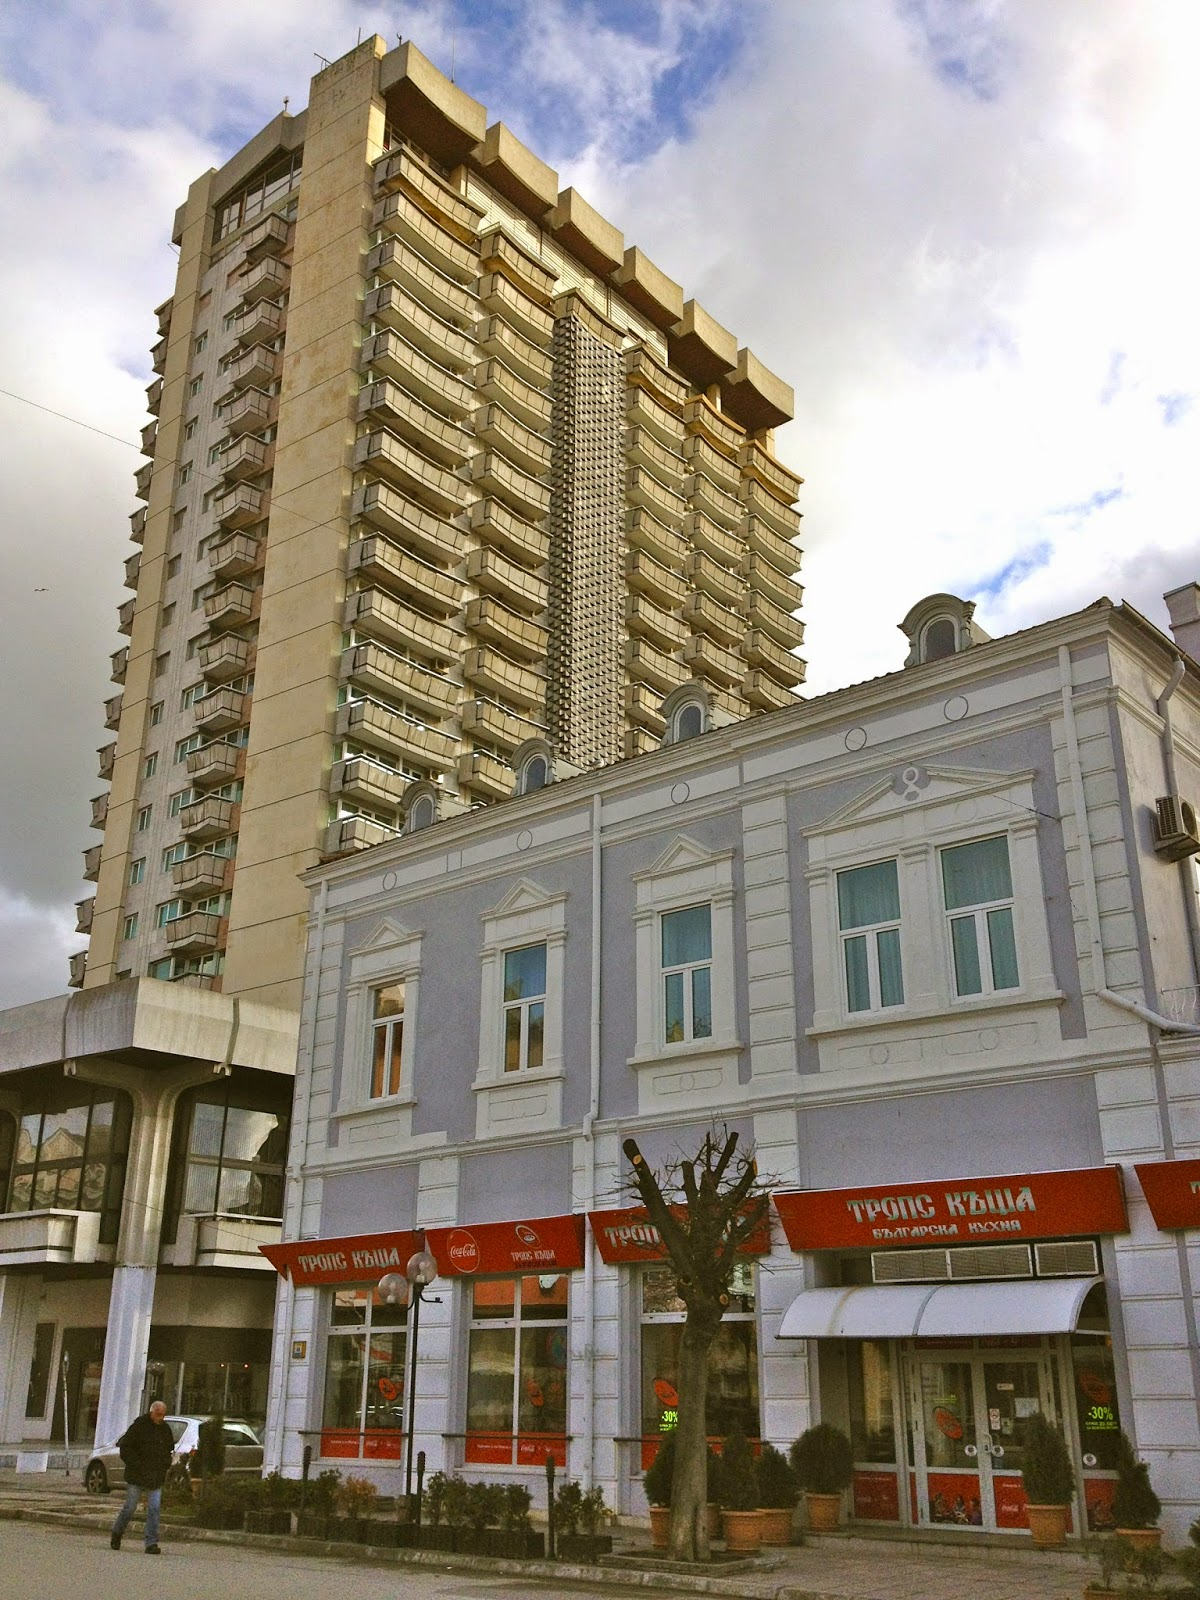 Picture of Cherno More Hotel / Black Sea Hotel in Varna, Bulgaria.